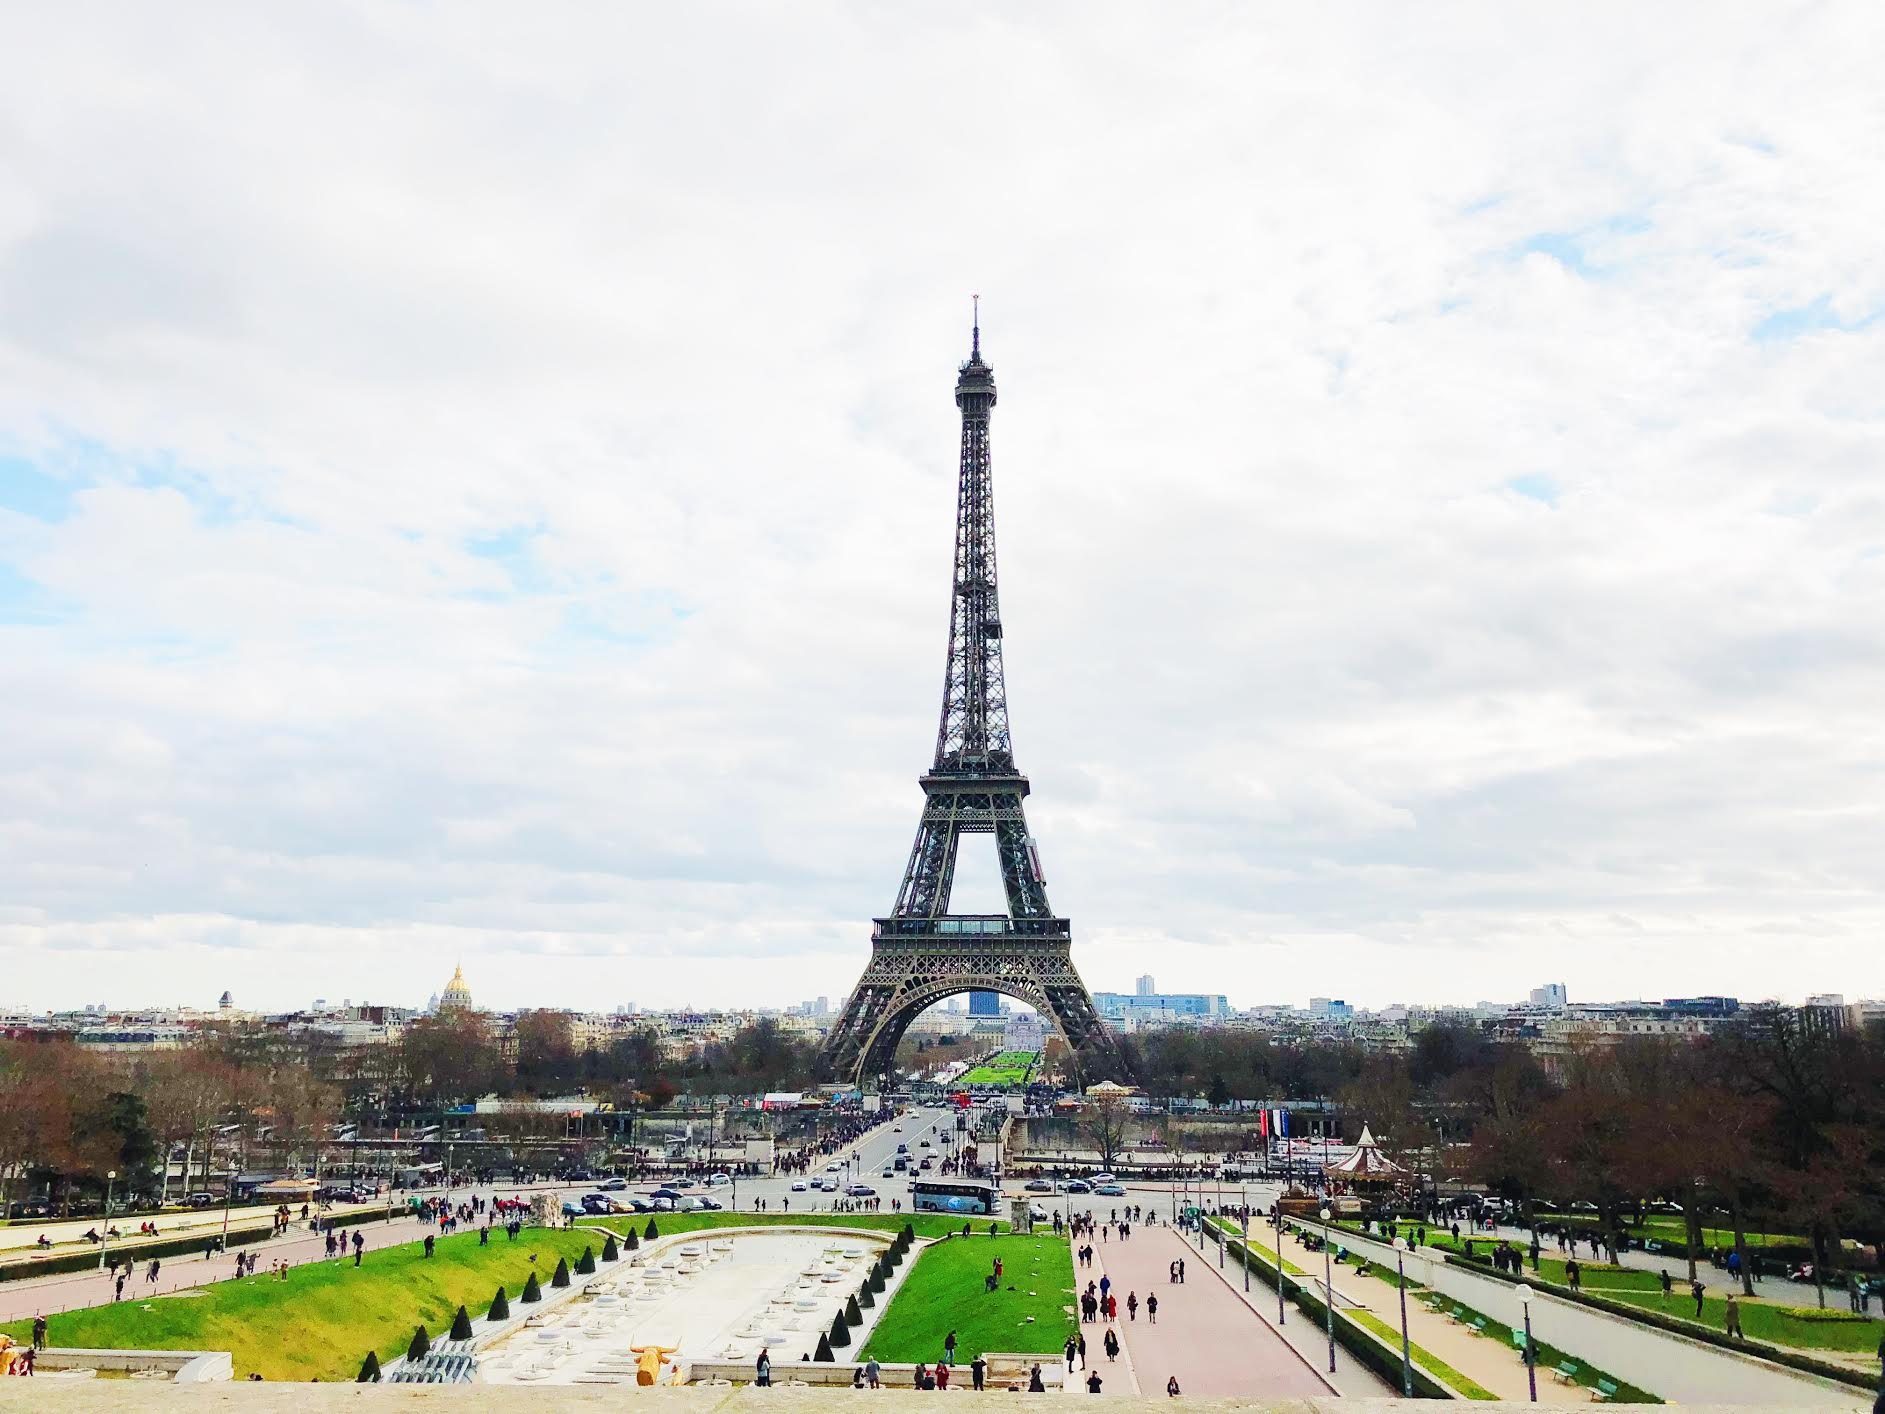 Muslim-travel-guide-Paris-Eiffel-Tower-garden-view.jpg